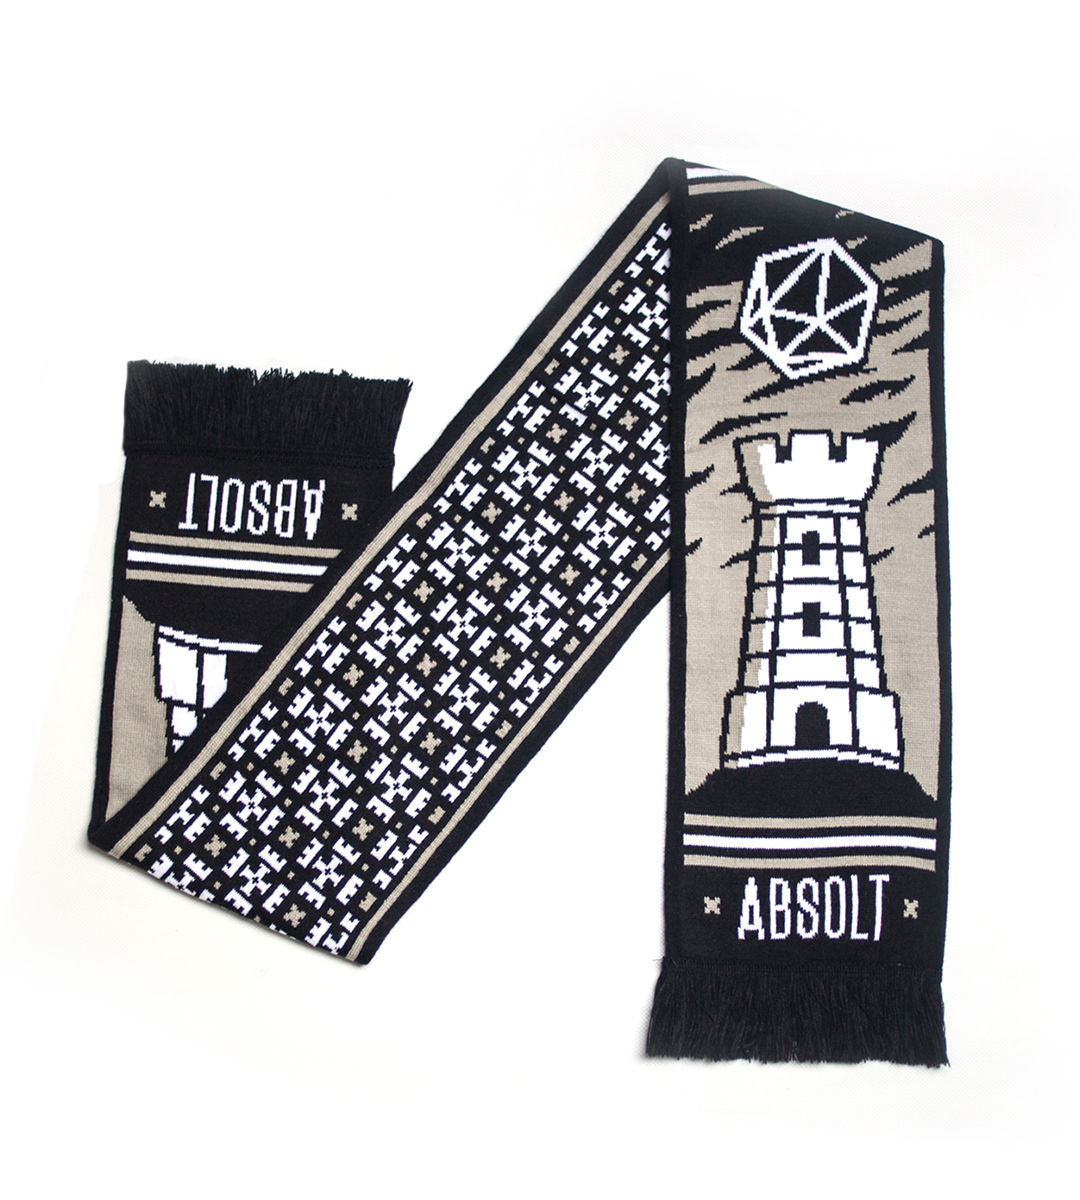 Absolt Club Scarf - product images  of